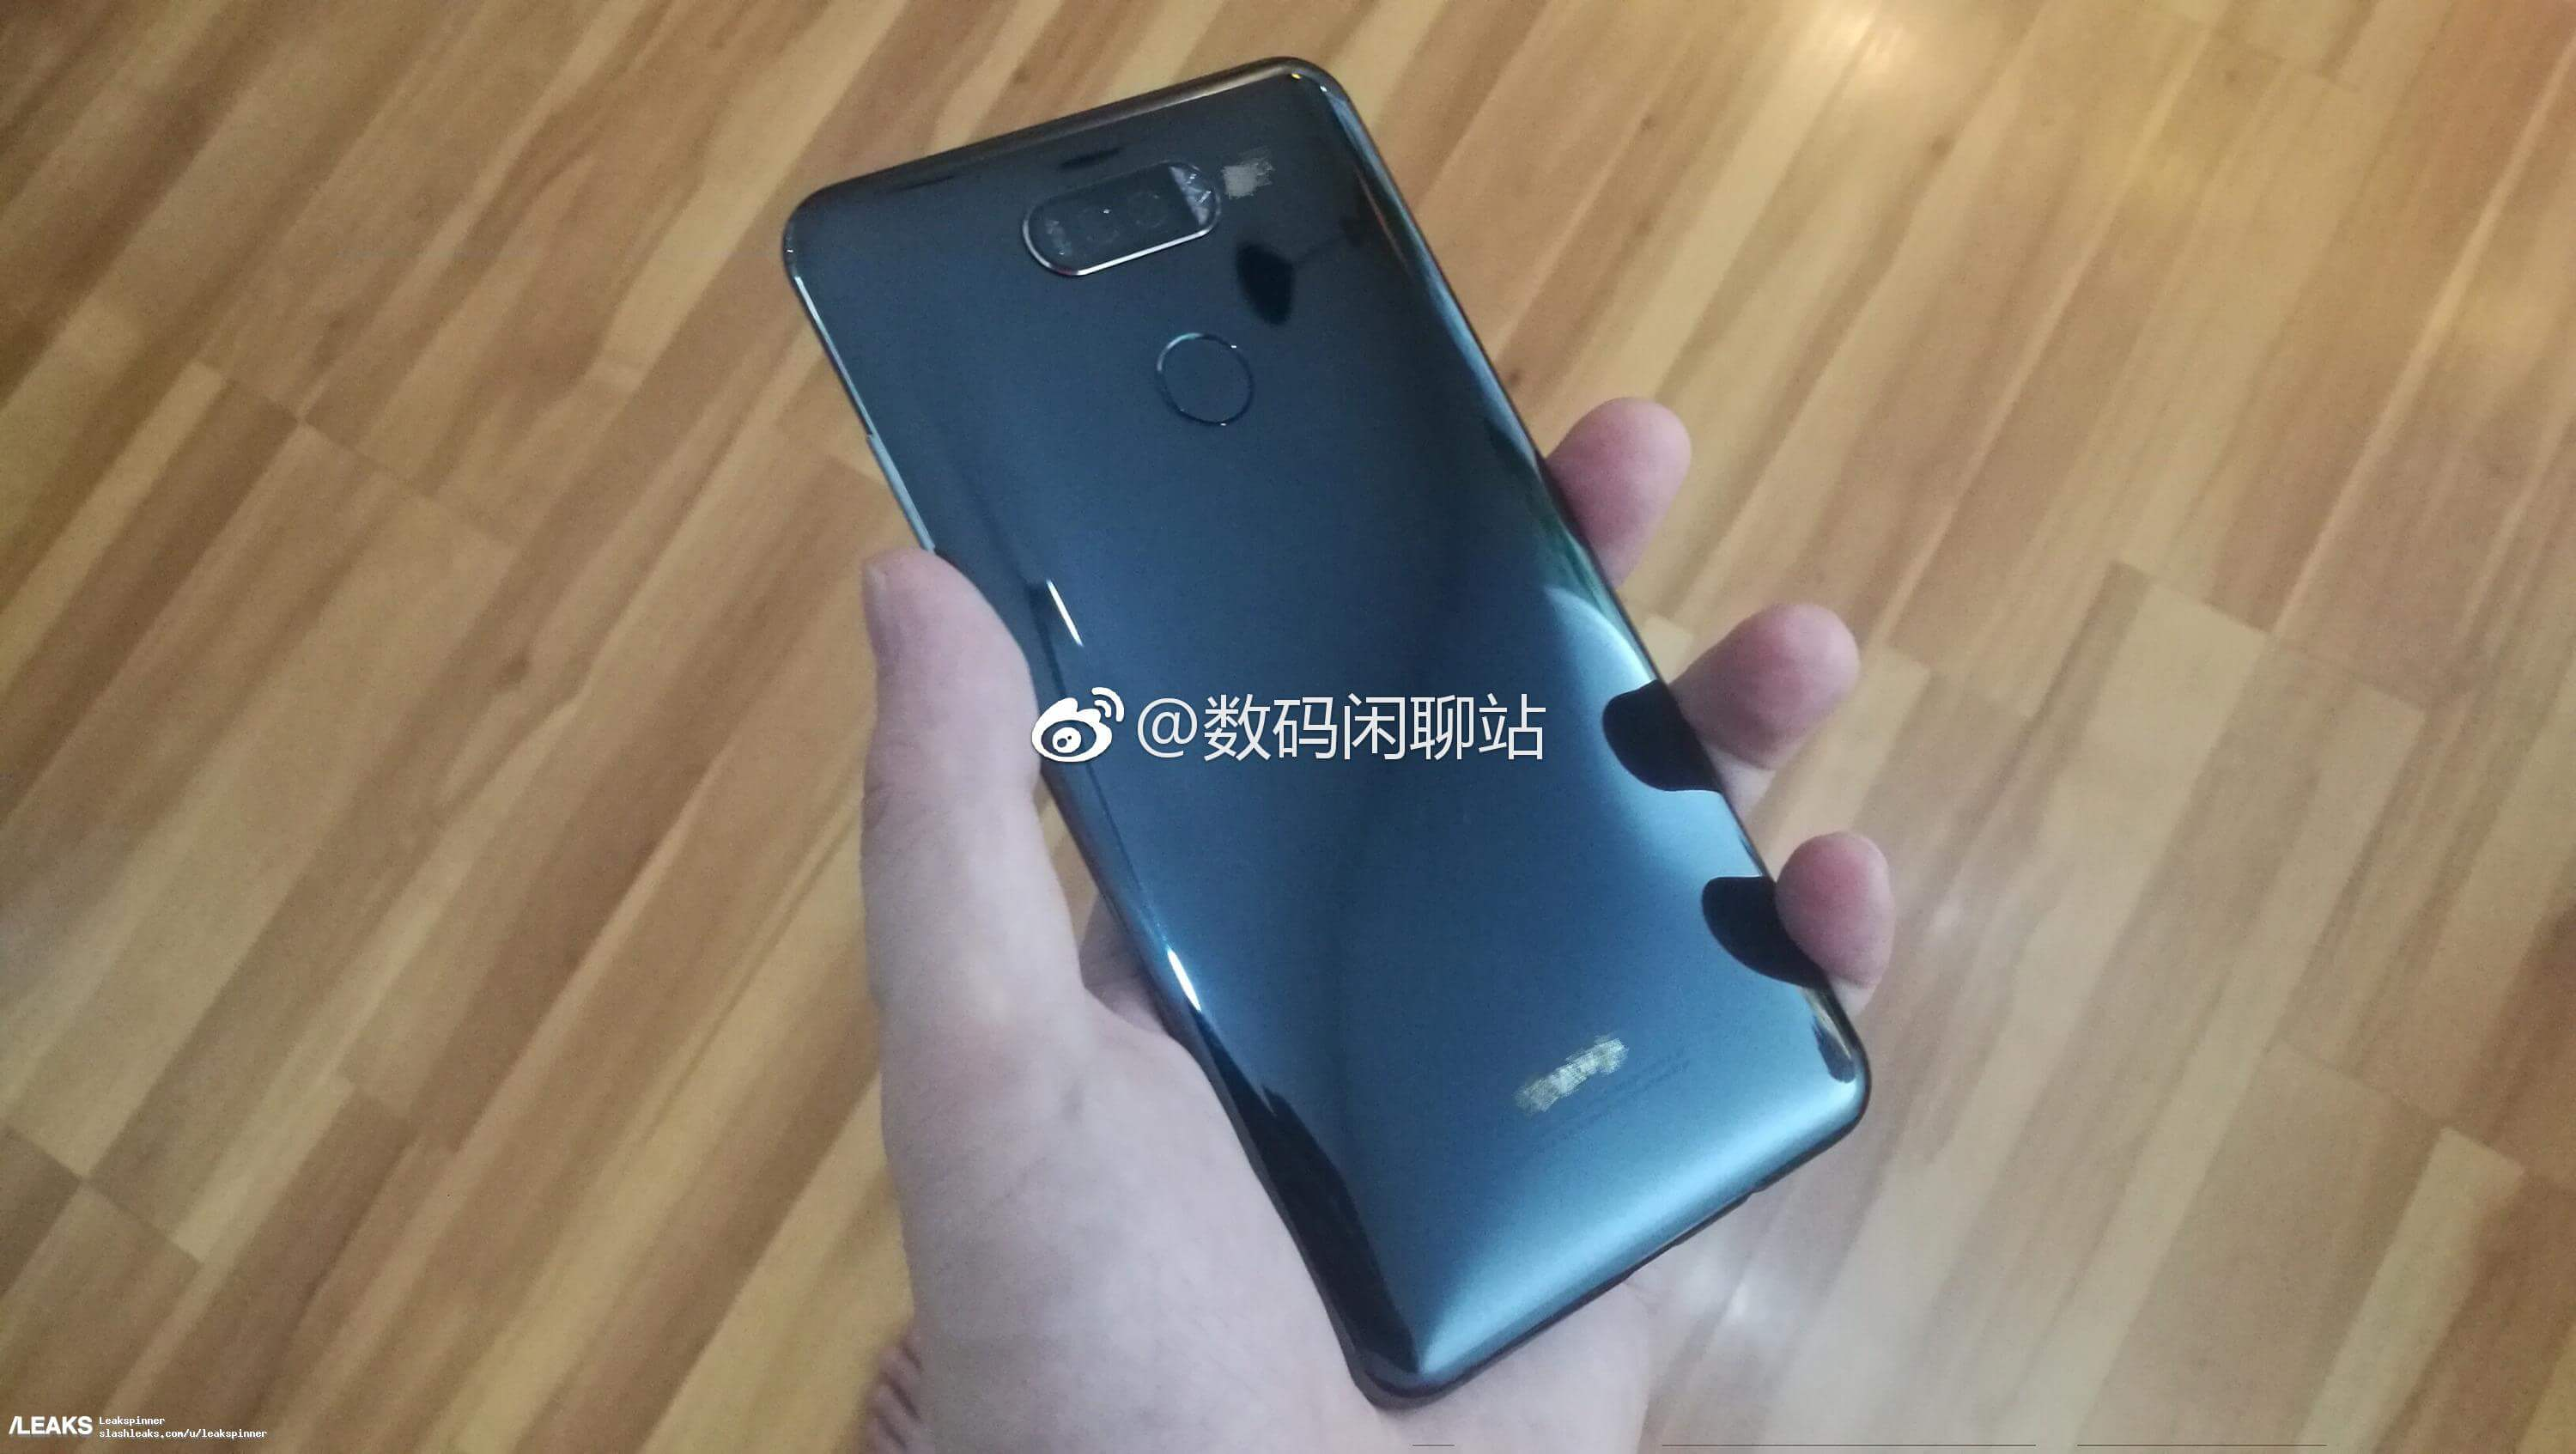 Huawei Mate 10 Android Smartphone